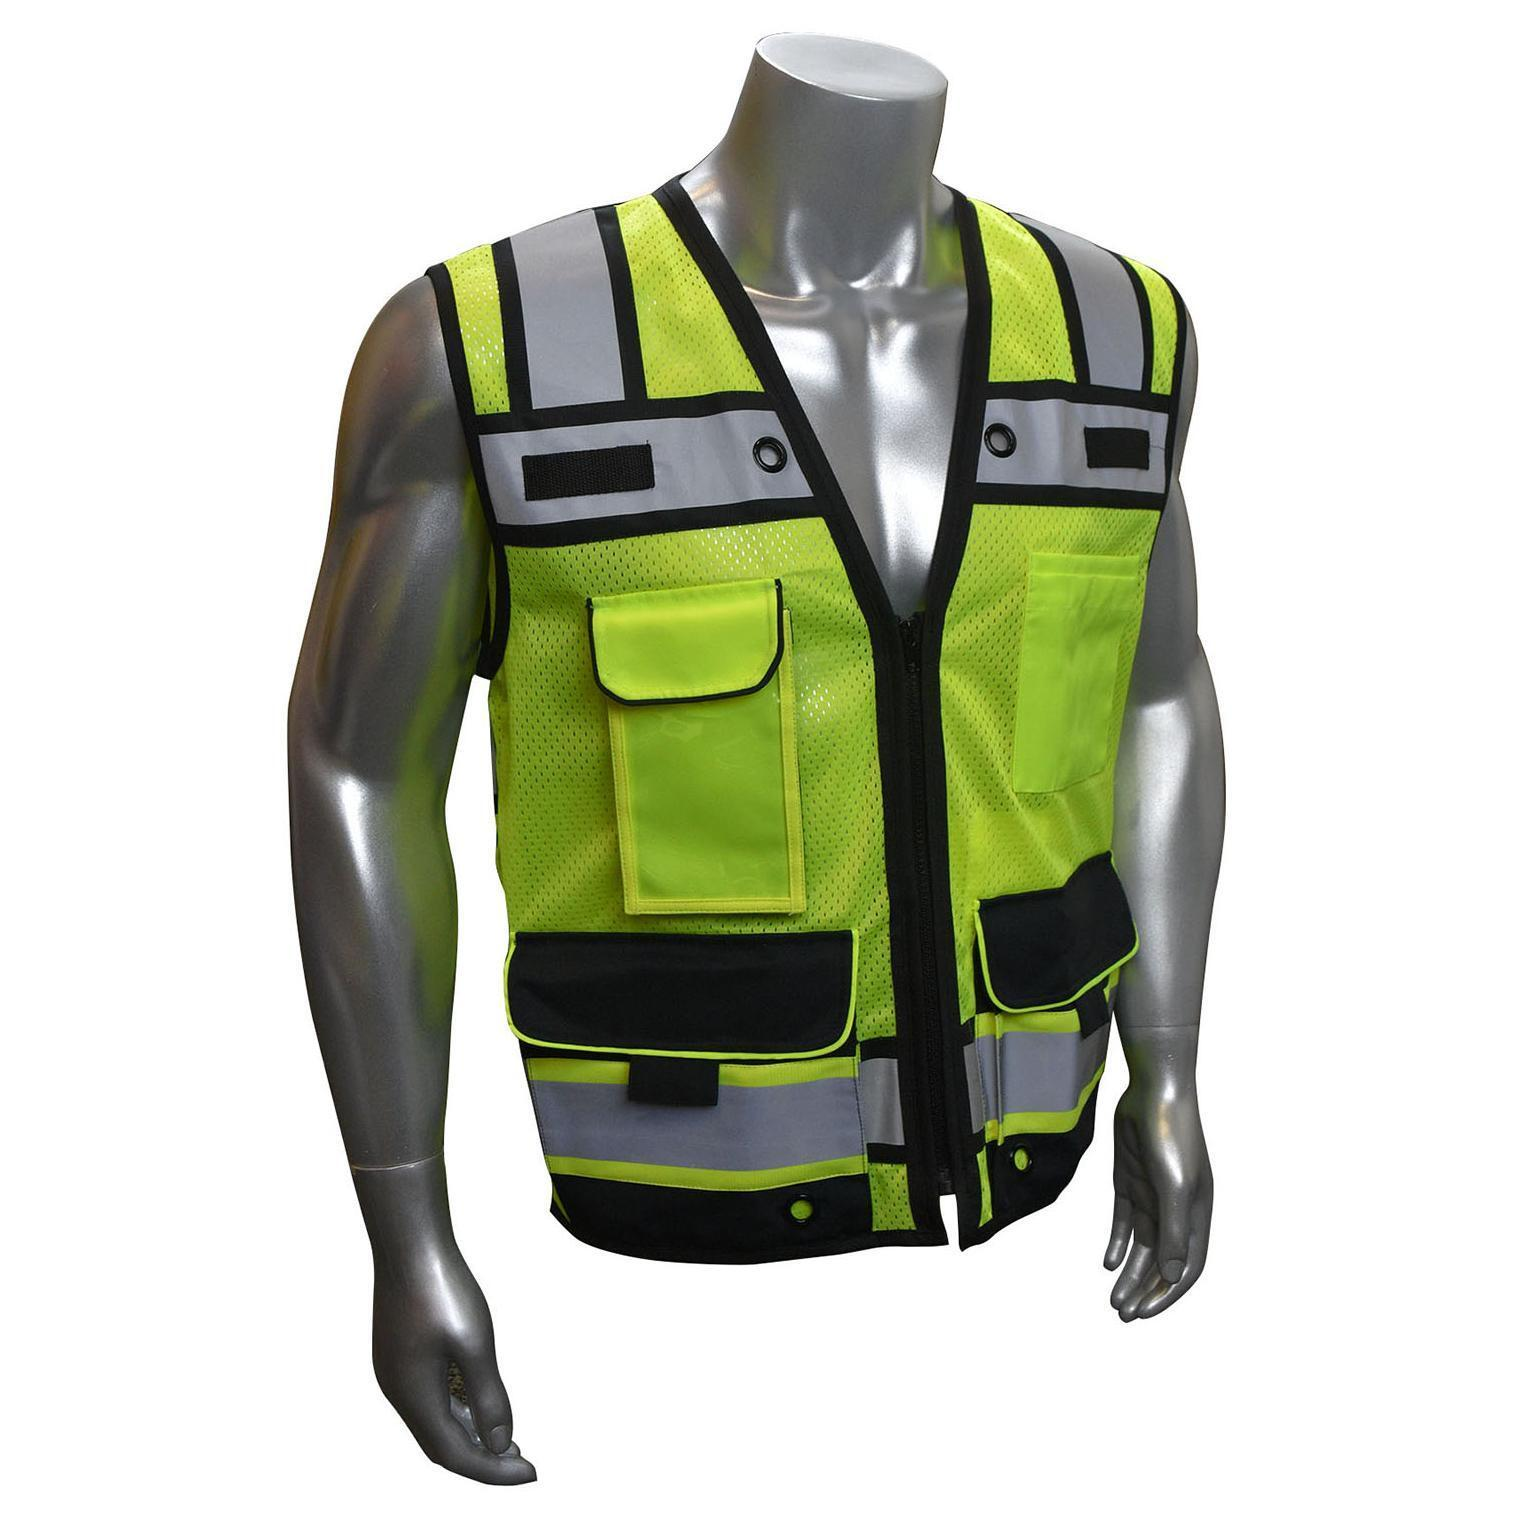 Ikea childrens safety vest usa dma forex brokers